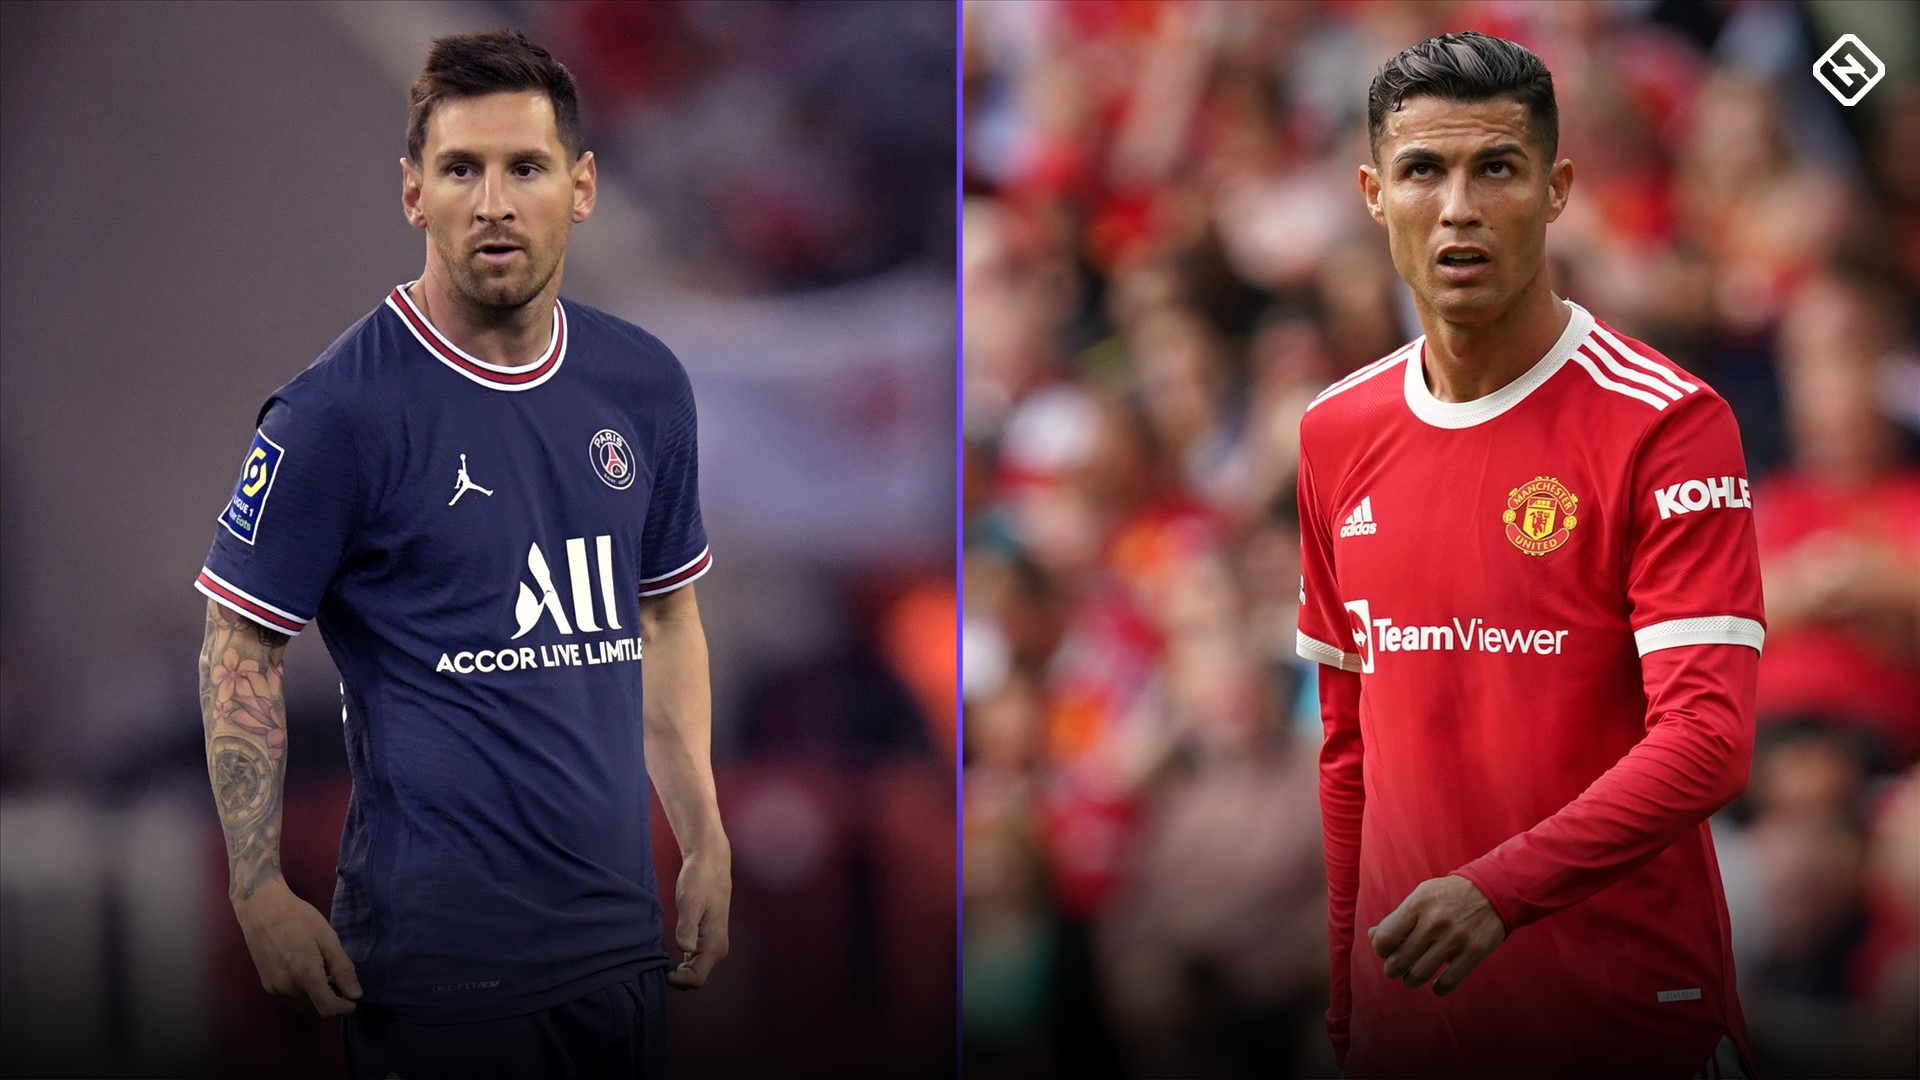 FIFA 22 rankings: Finest participant introduced as Messi, Ronaldo and others battle for supremacy